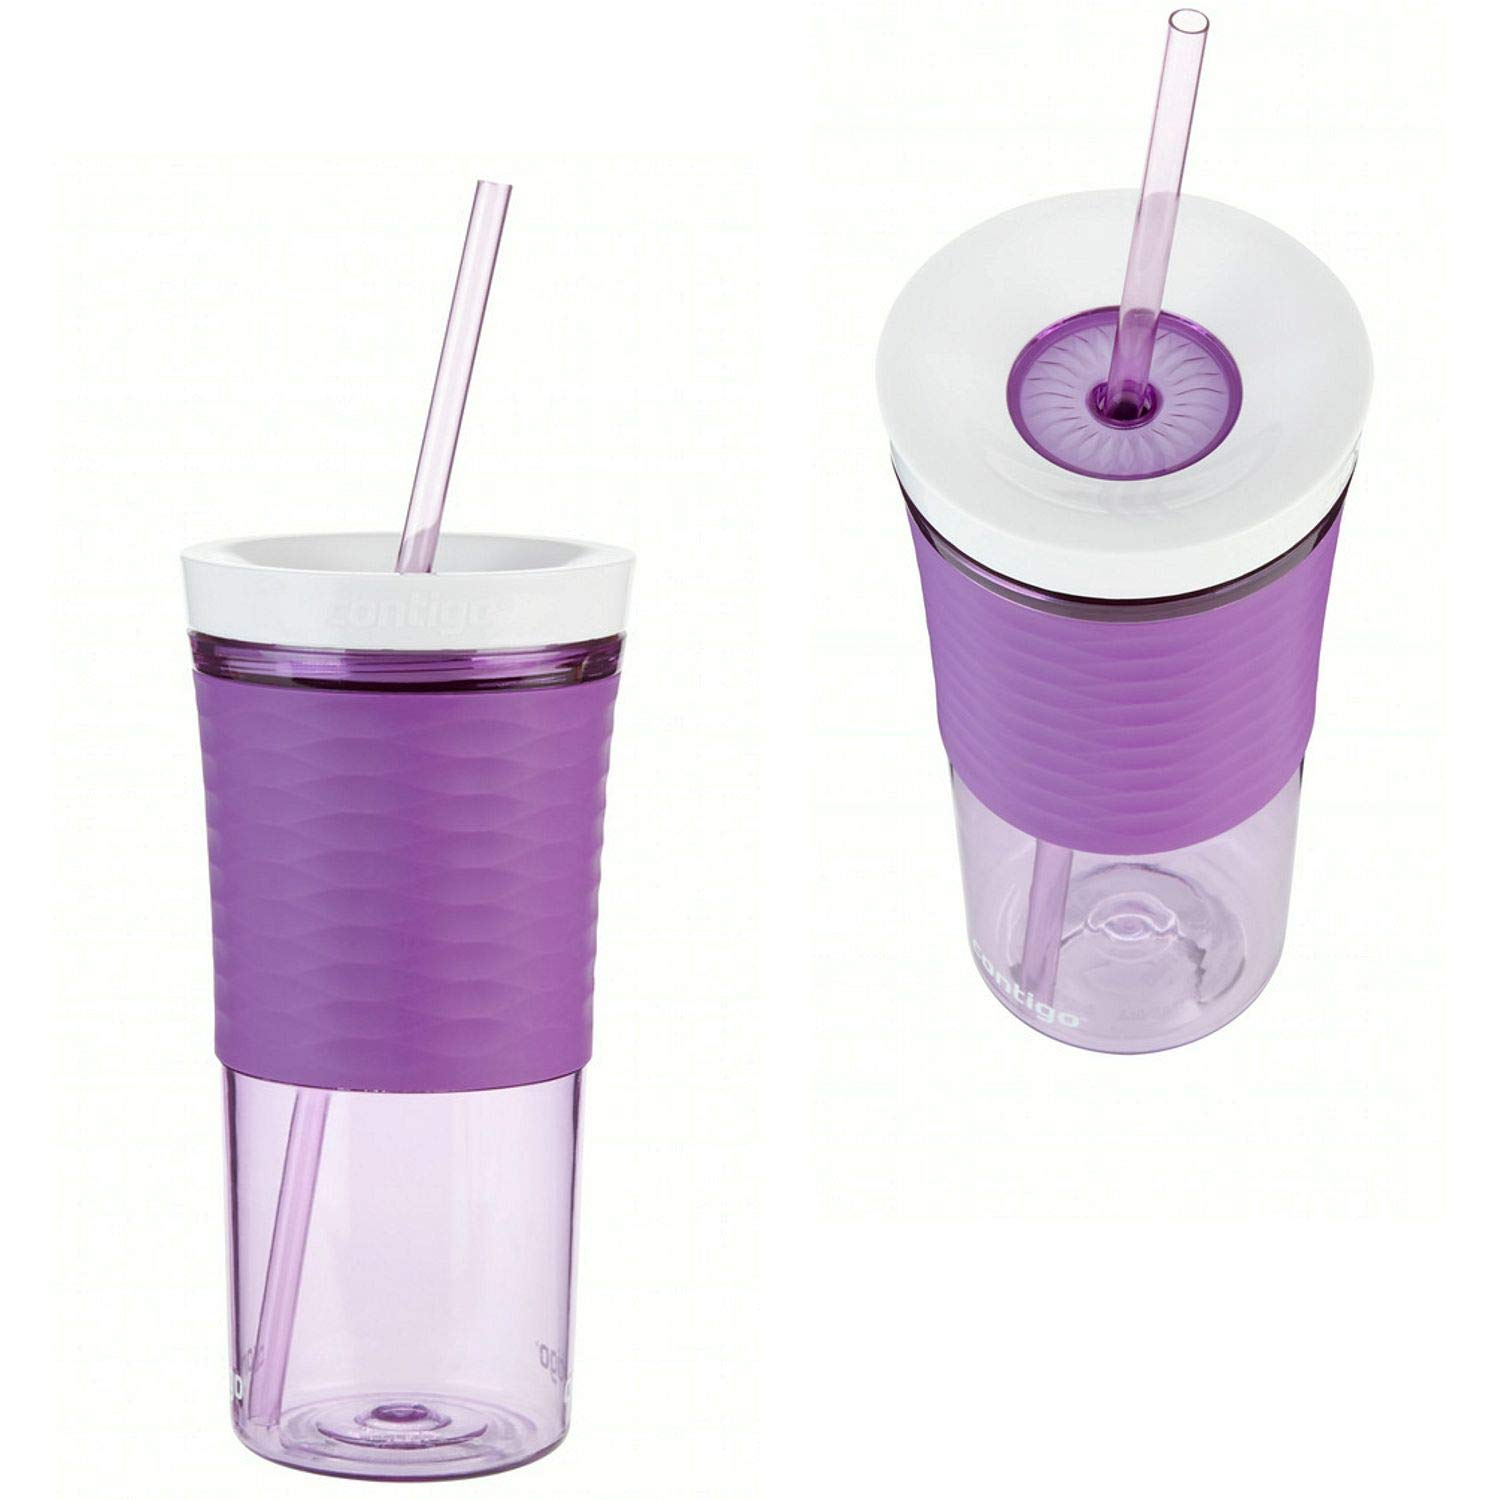 Contigo-Shake-and-Go-Tumbler-with-Straw